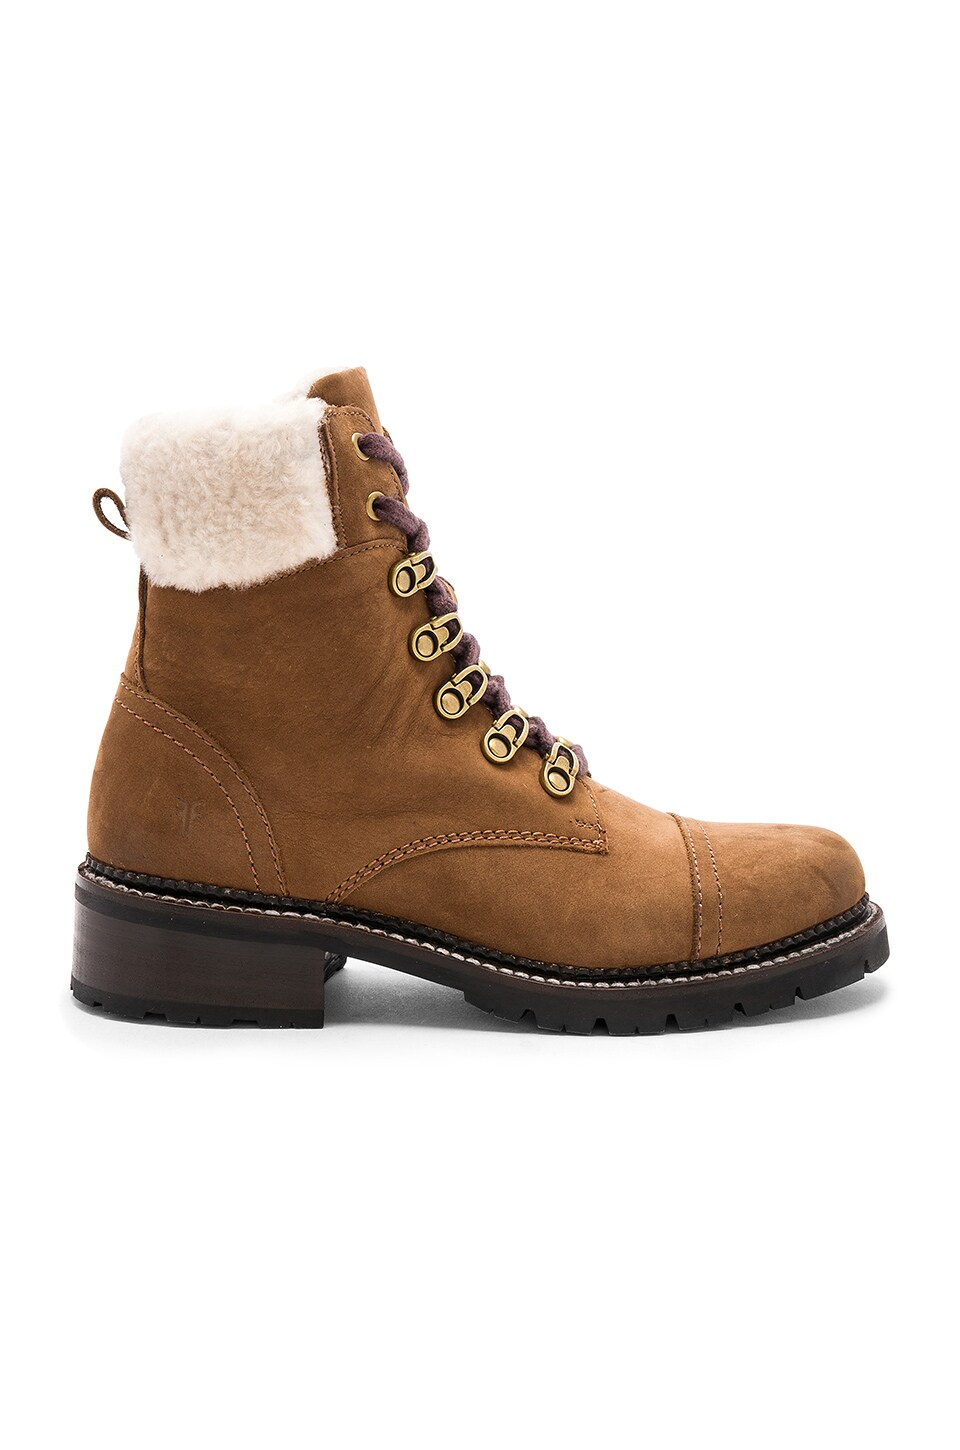 Samantha Shearling Hiker Boot by Frye